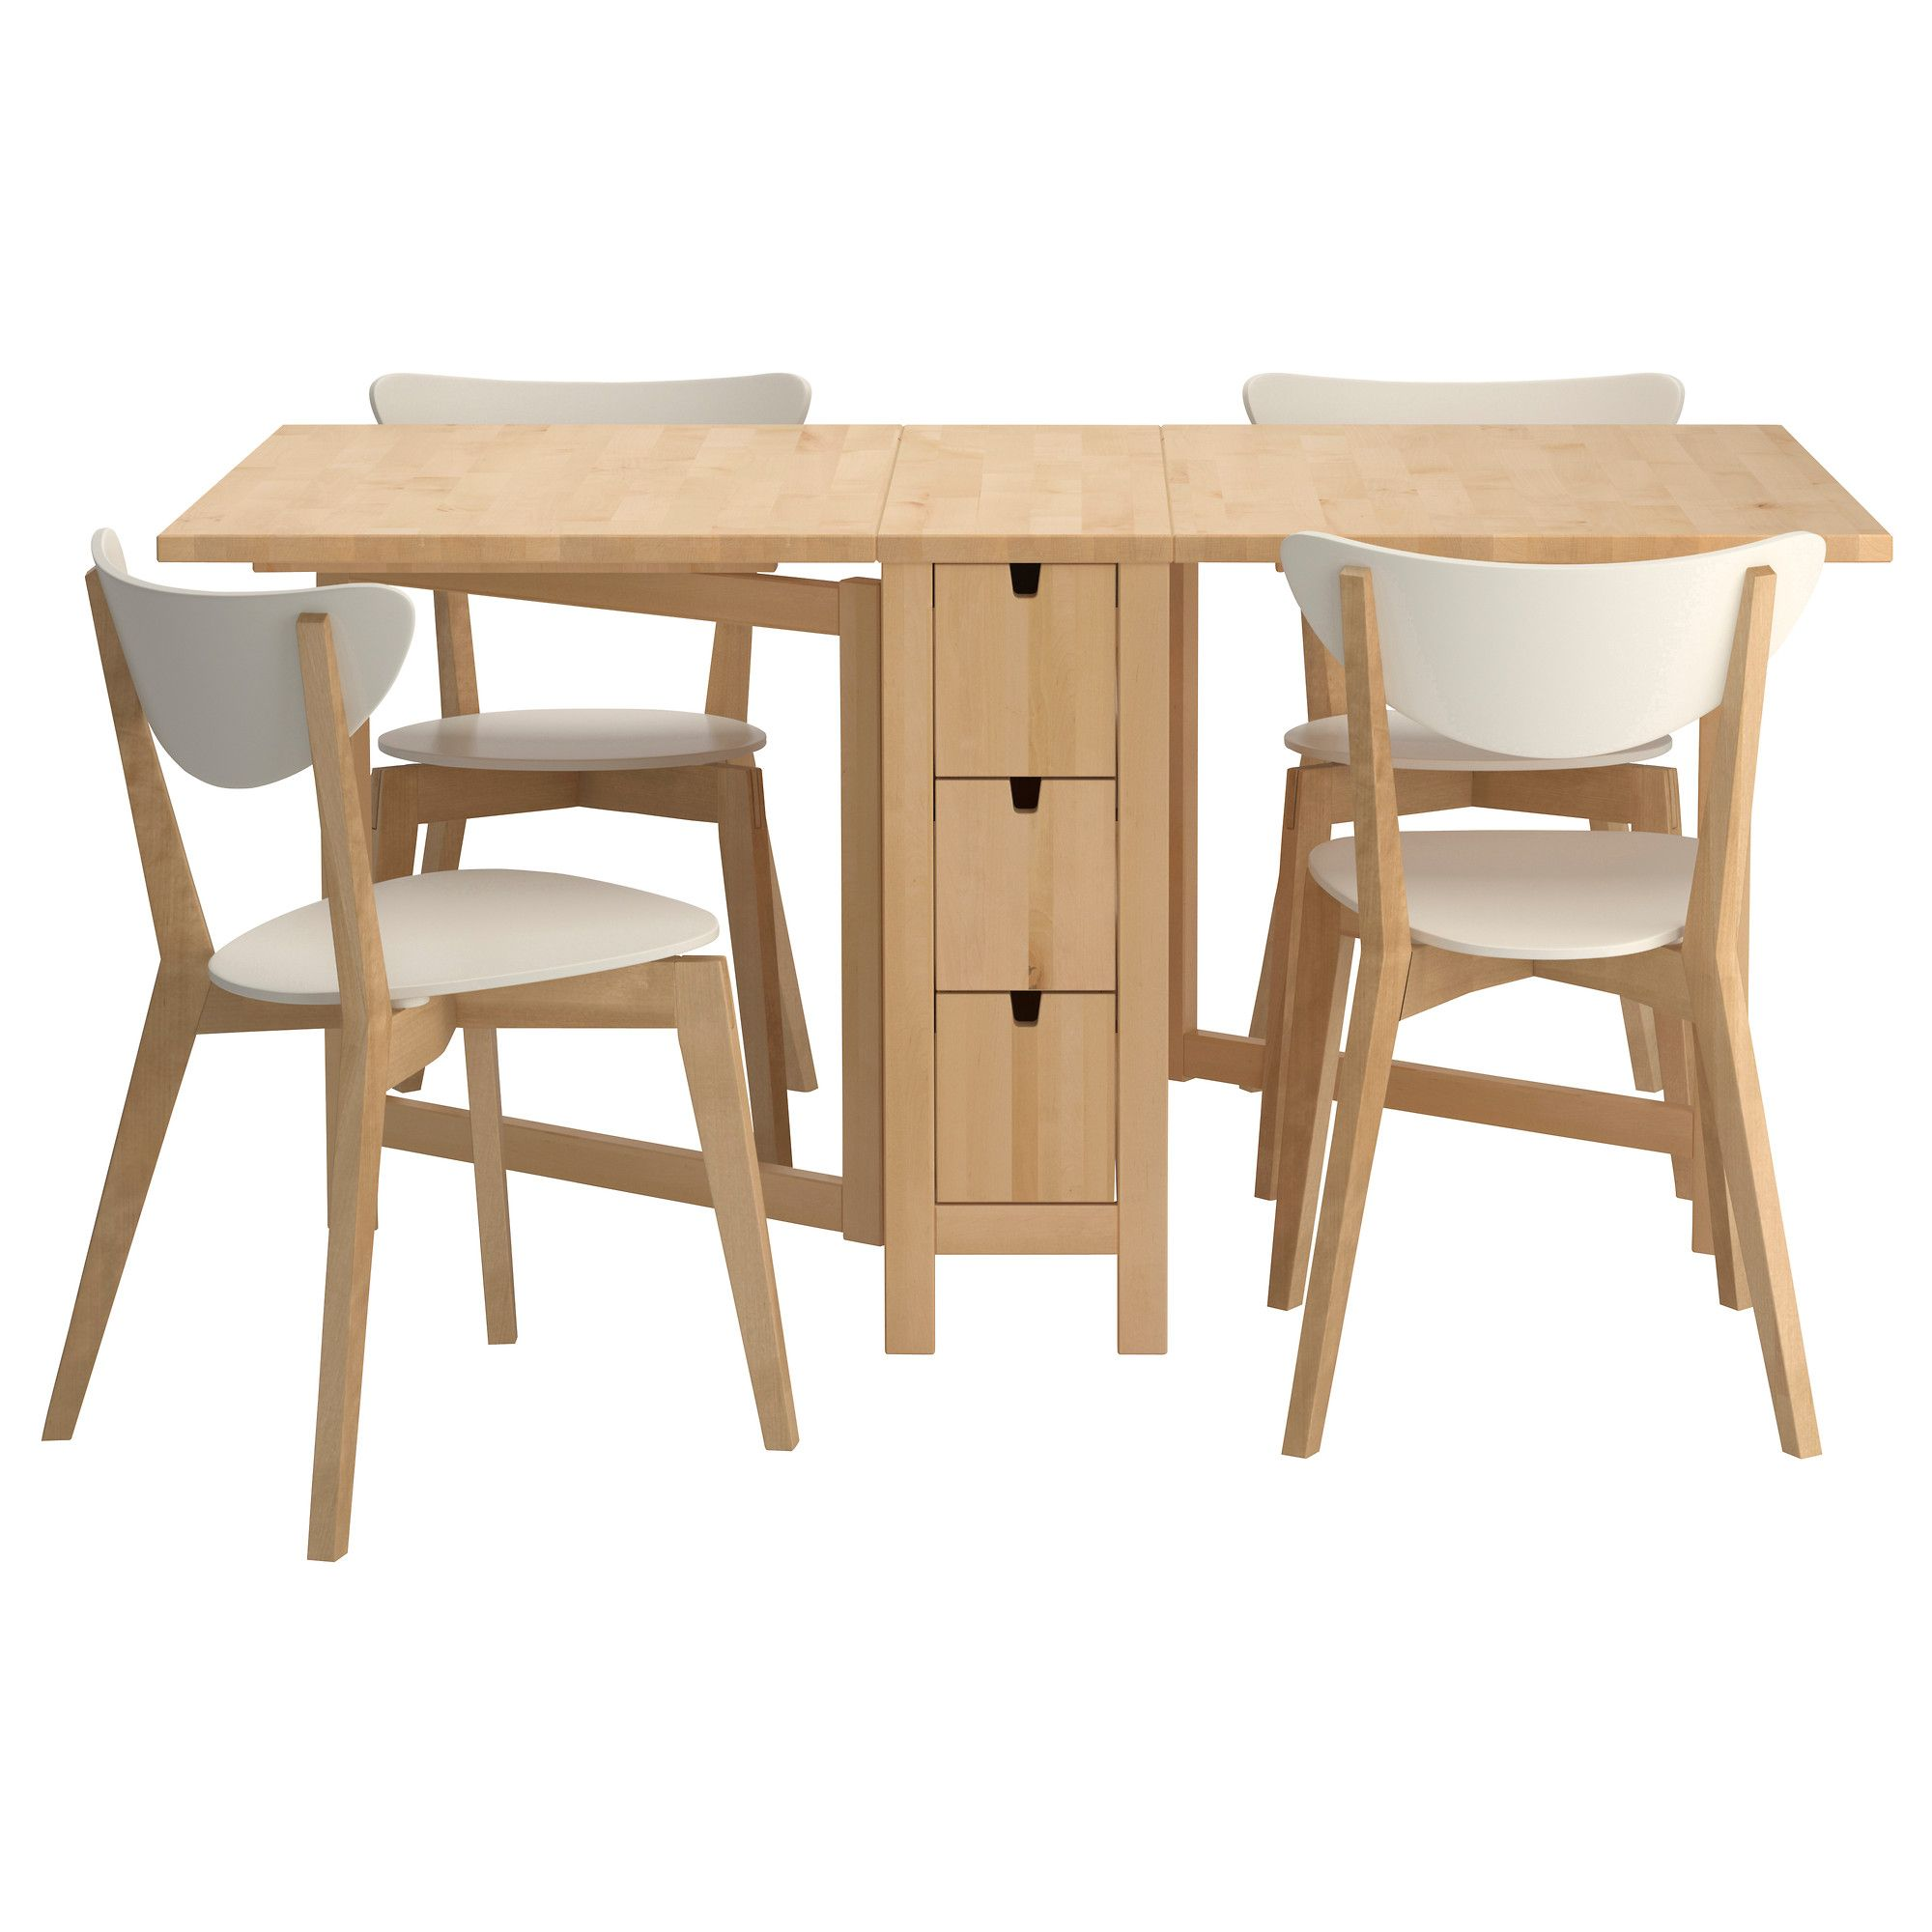 ikea kitchen table top islands norden nordmyra and 4 chairs for the love